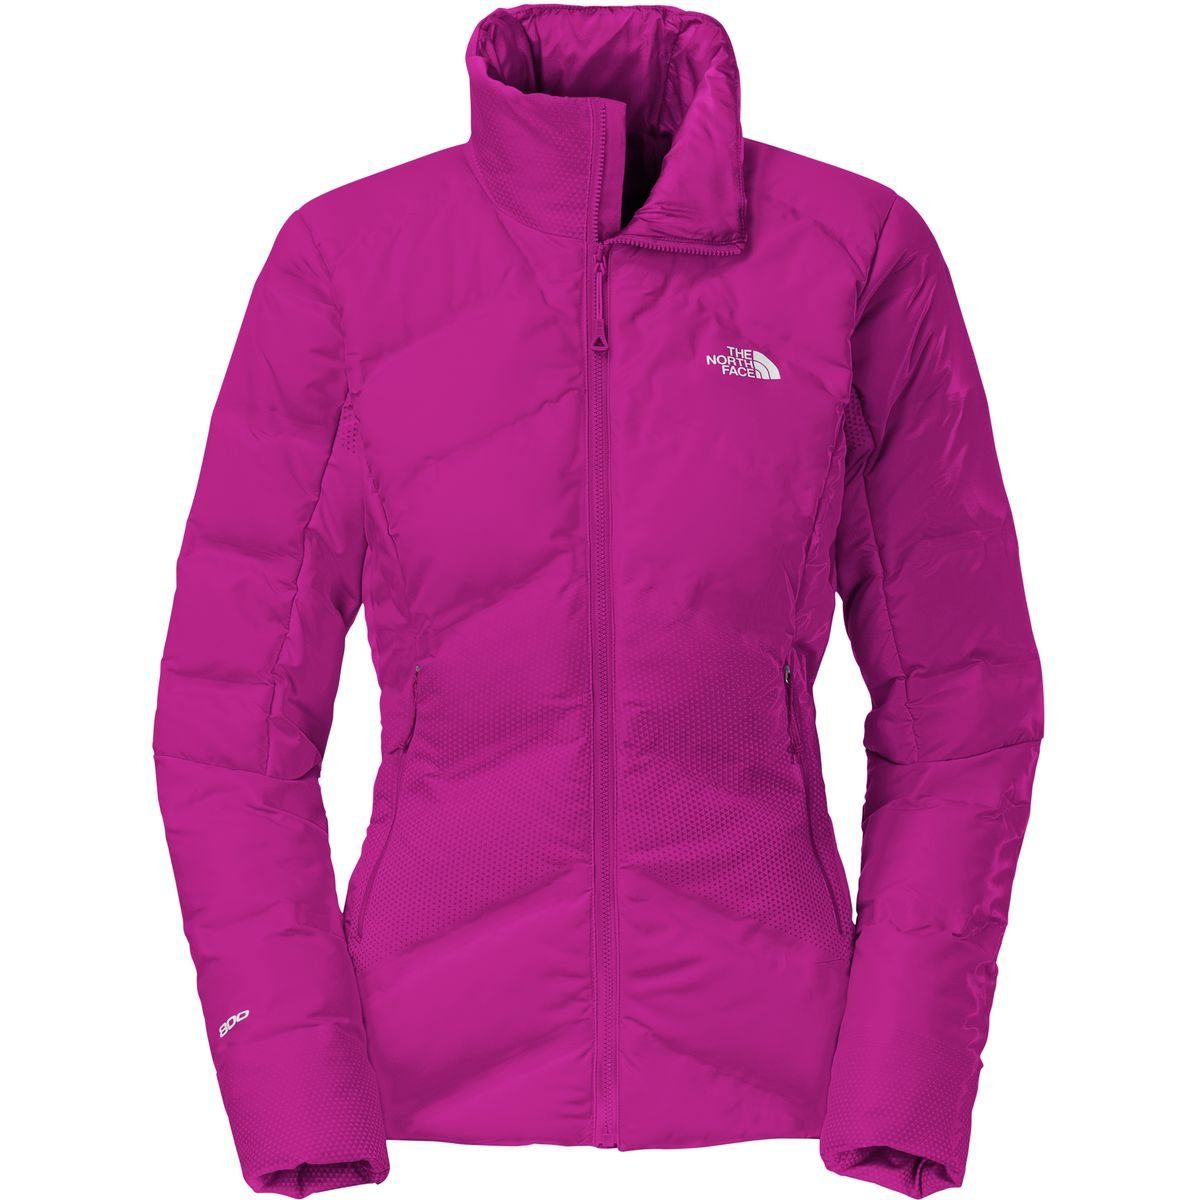 THE NORTH FACE Womens FuseForm , Dot Matrix Down Jacket